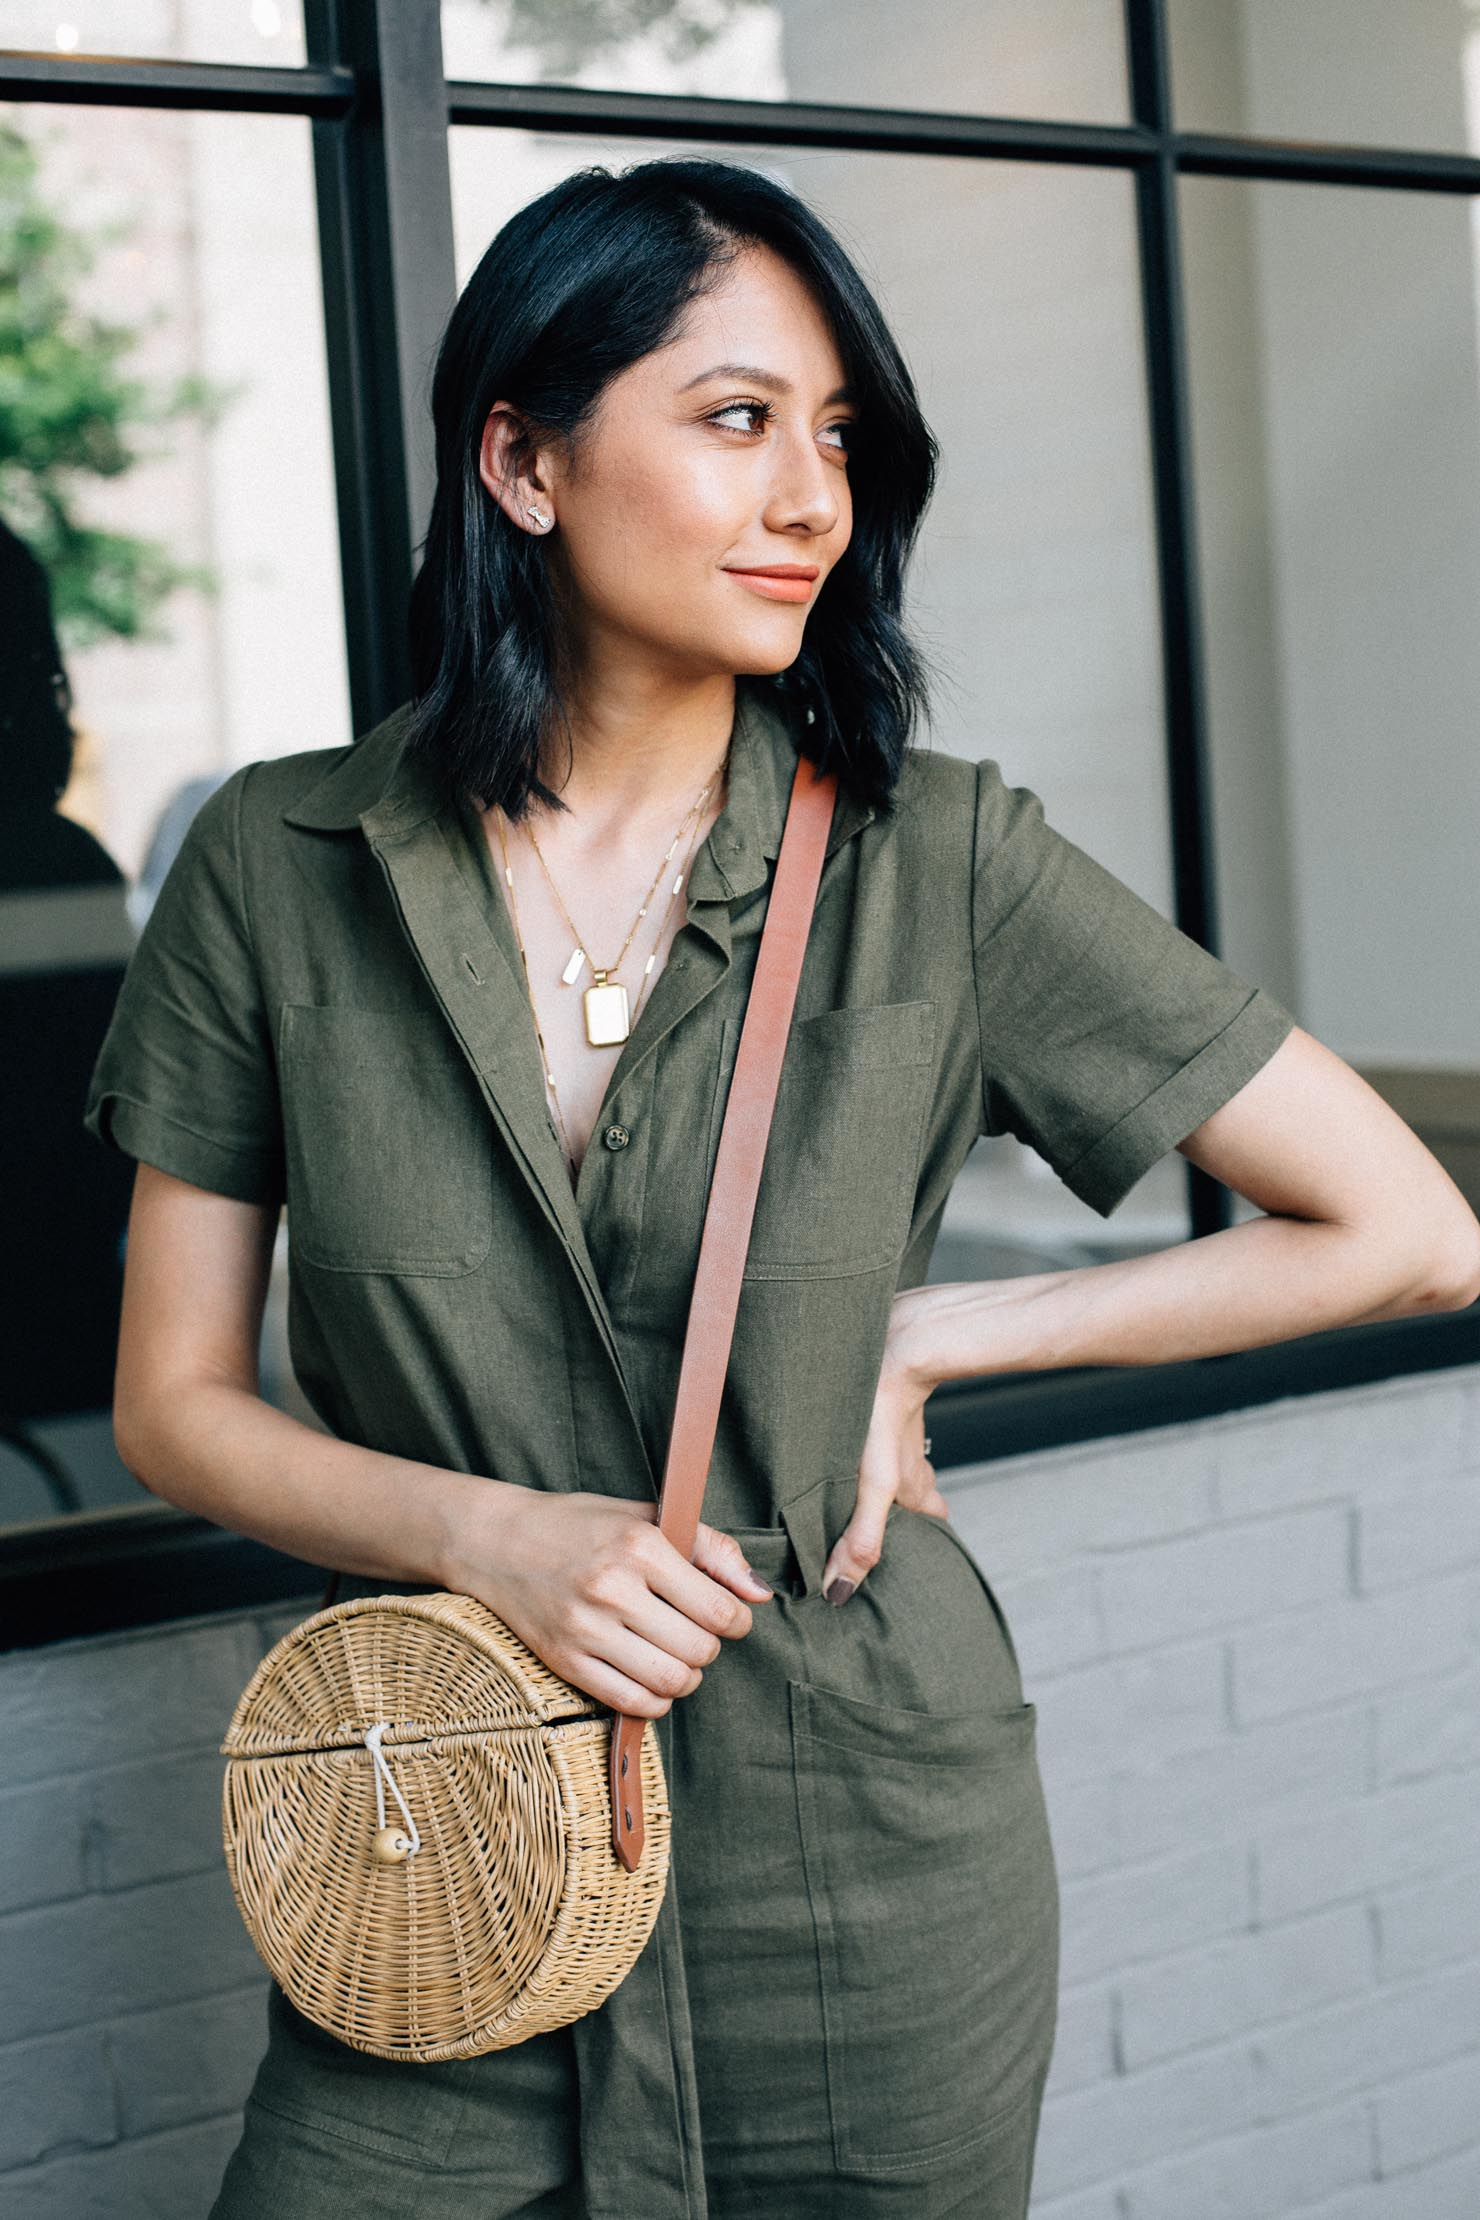 Military style linen jumpsuit | cute summer looks | Brunette hair styles | Lilly Beltran, fashion & lifestyle blogger | Street Styles